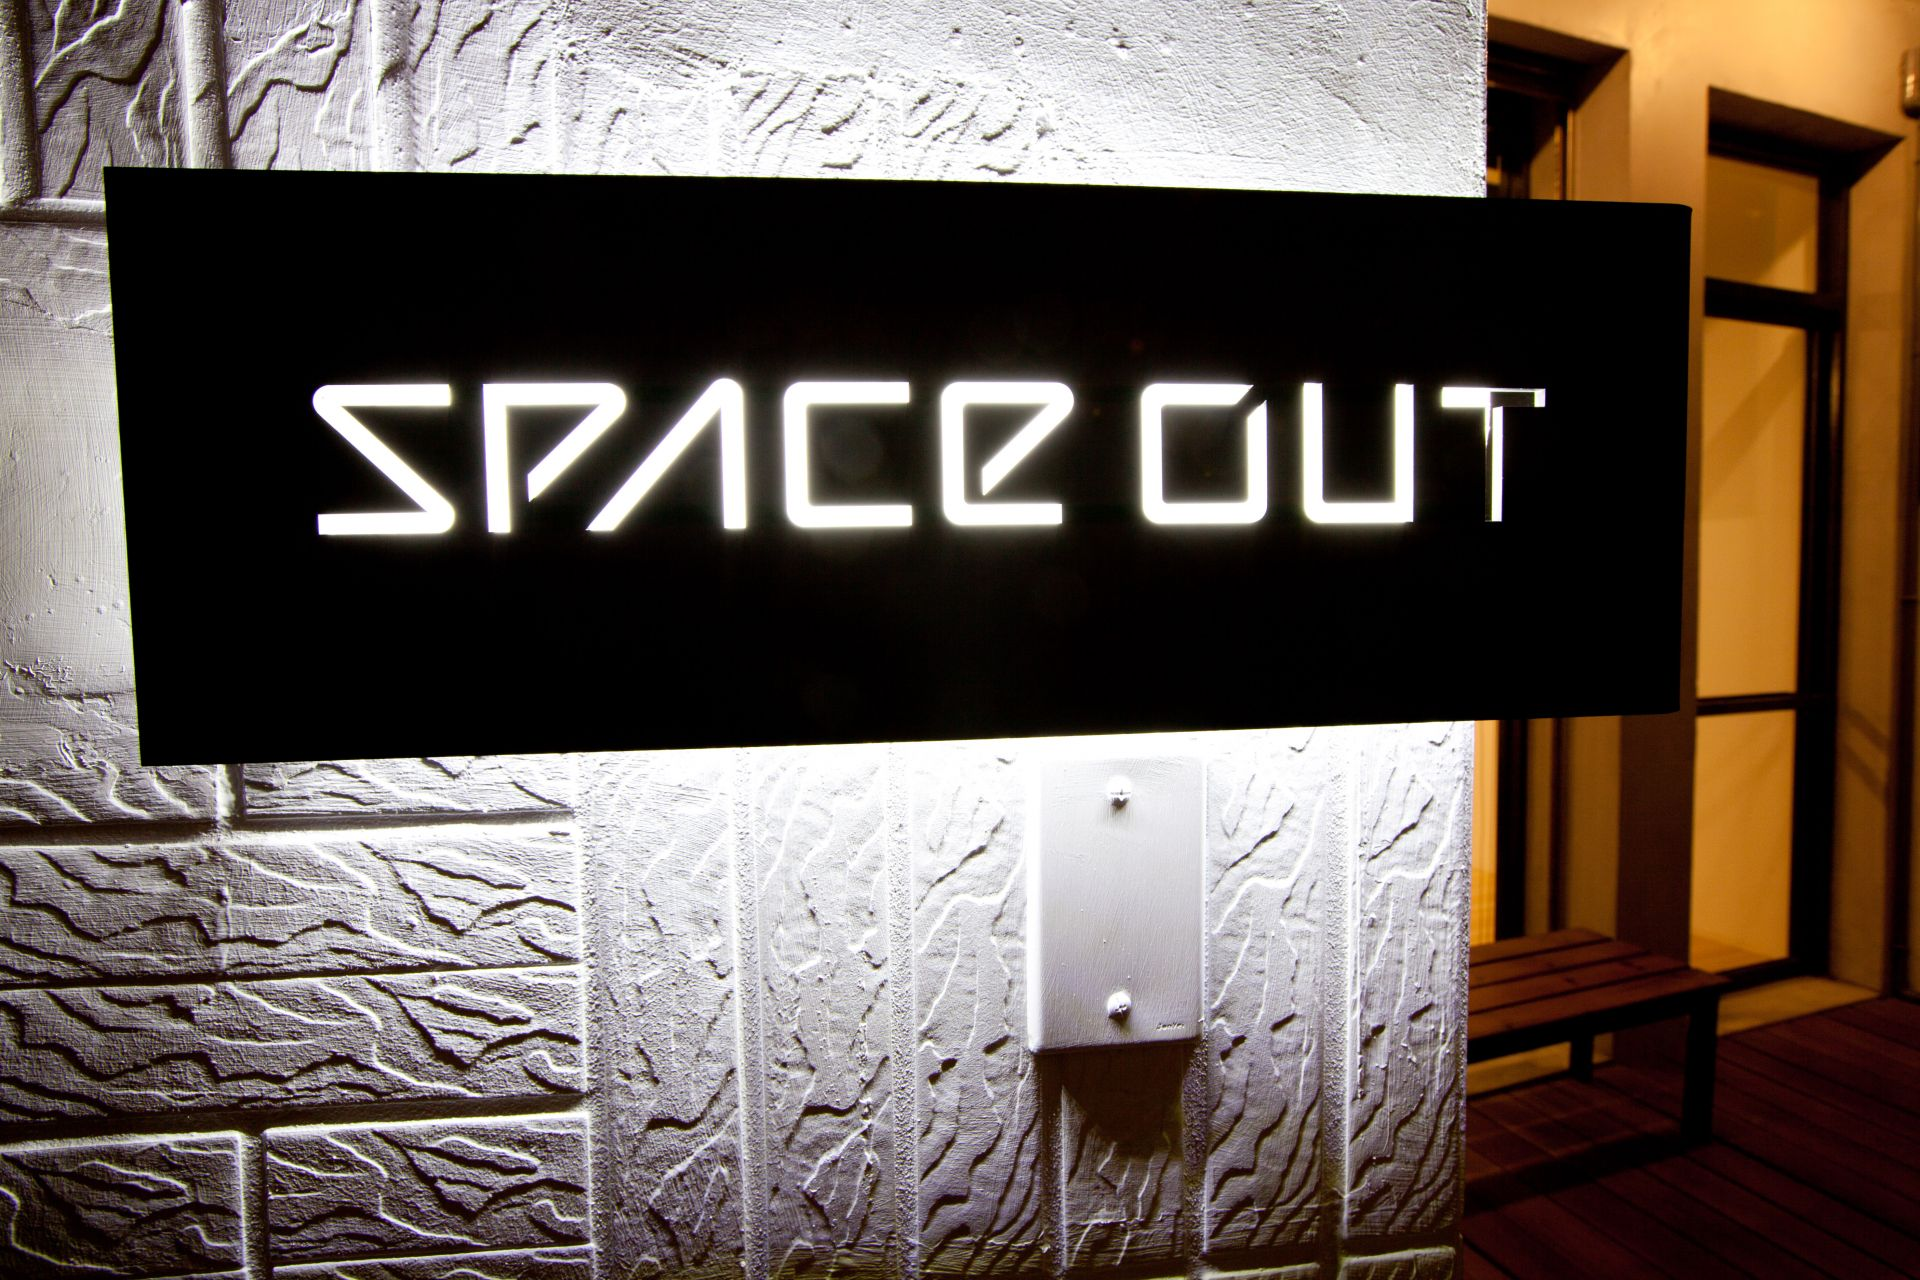 Spaceout, Tainan